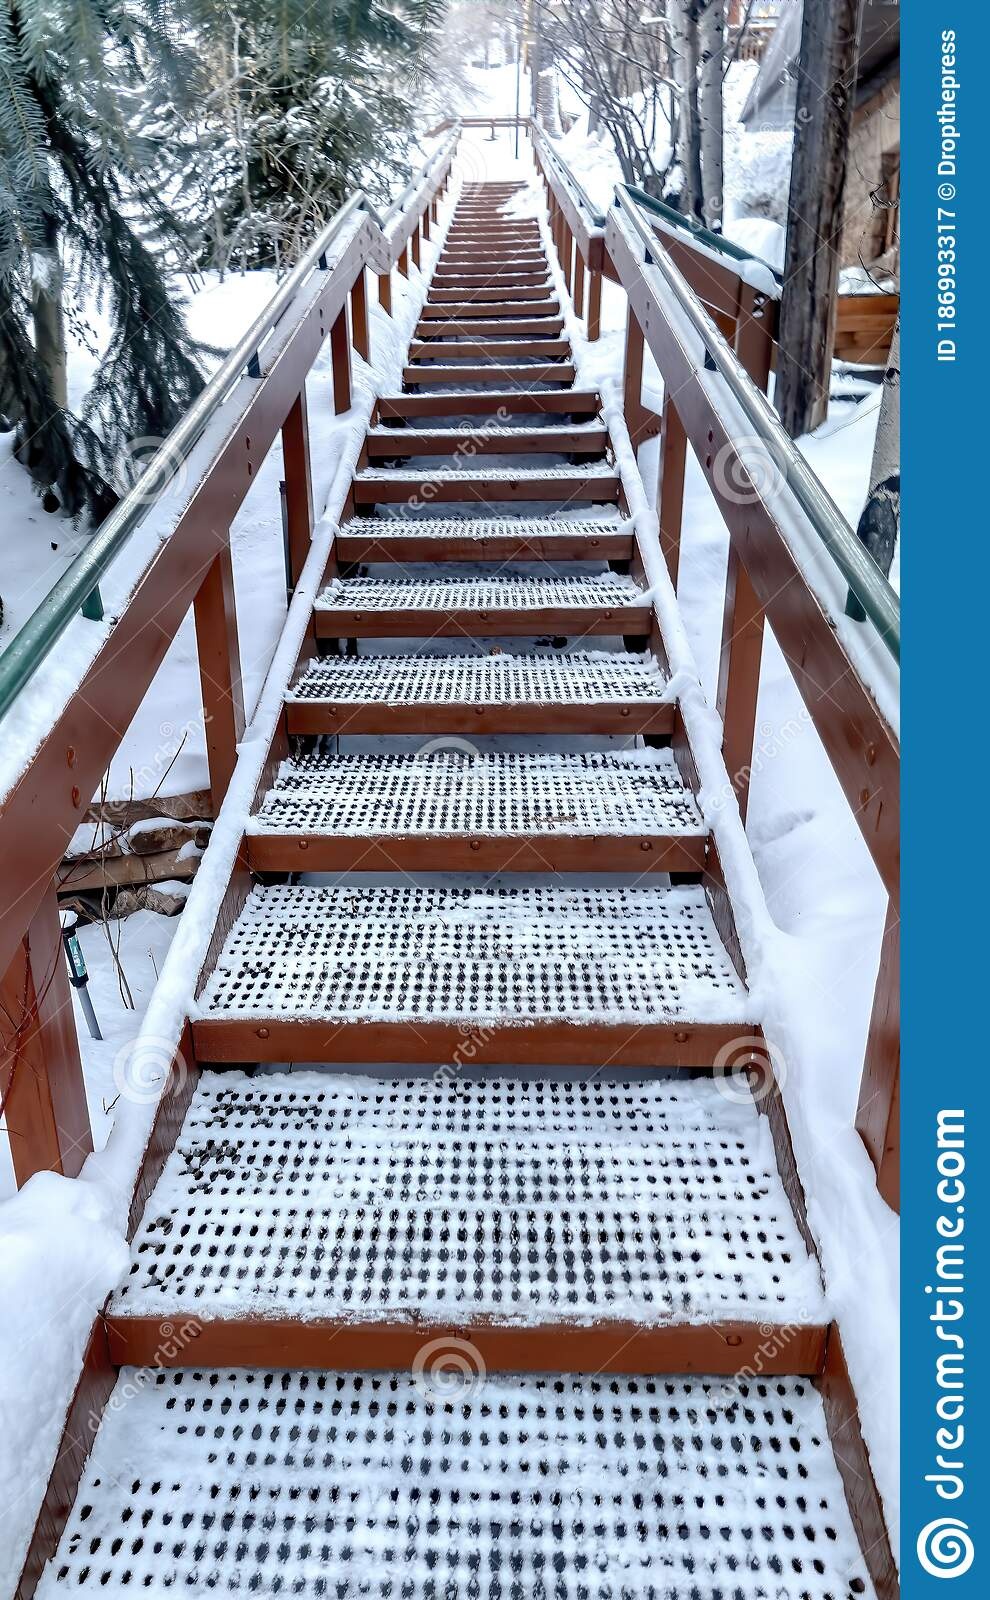 Vertical Focus On Stairs With Grate Treads And Metal Handrails Against Snow Covered Hill Stock Image Image Of Winter Scenic 186993317